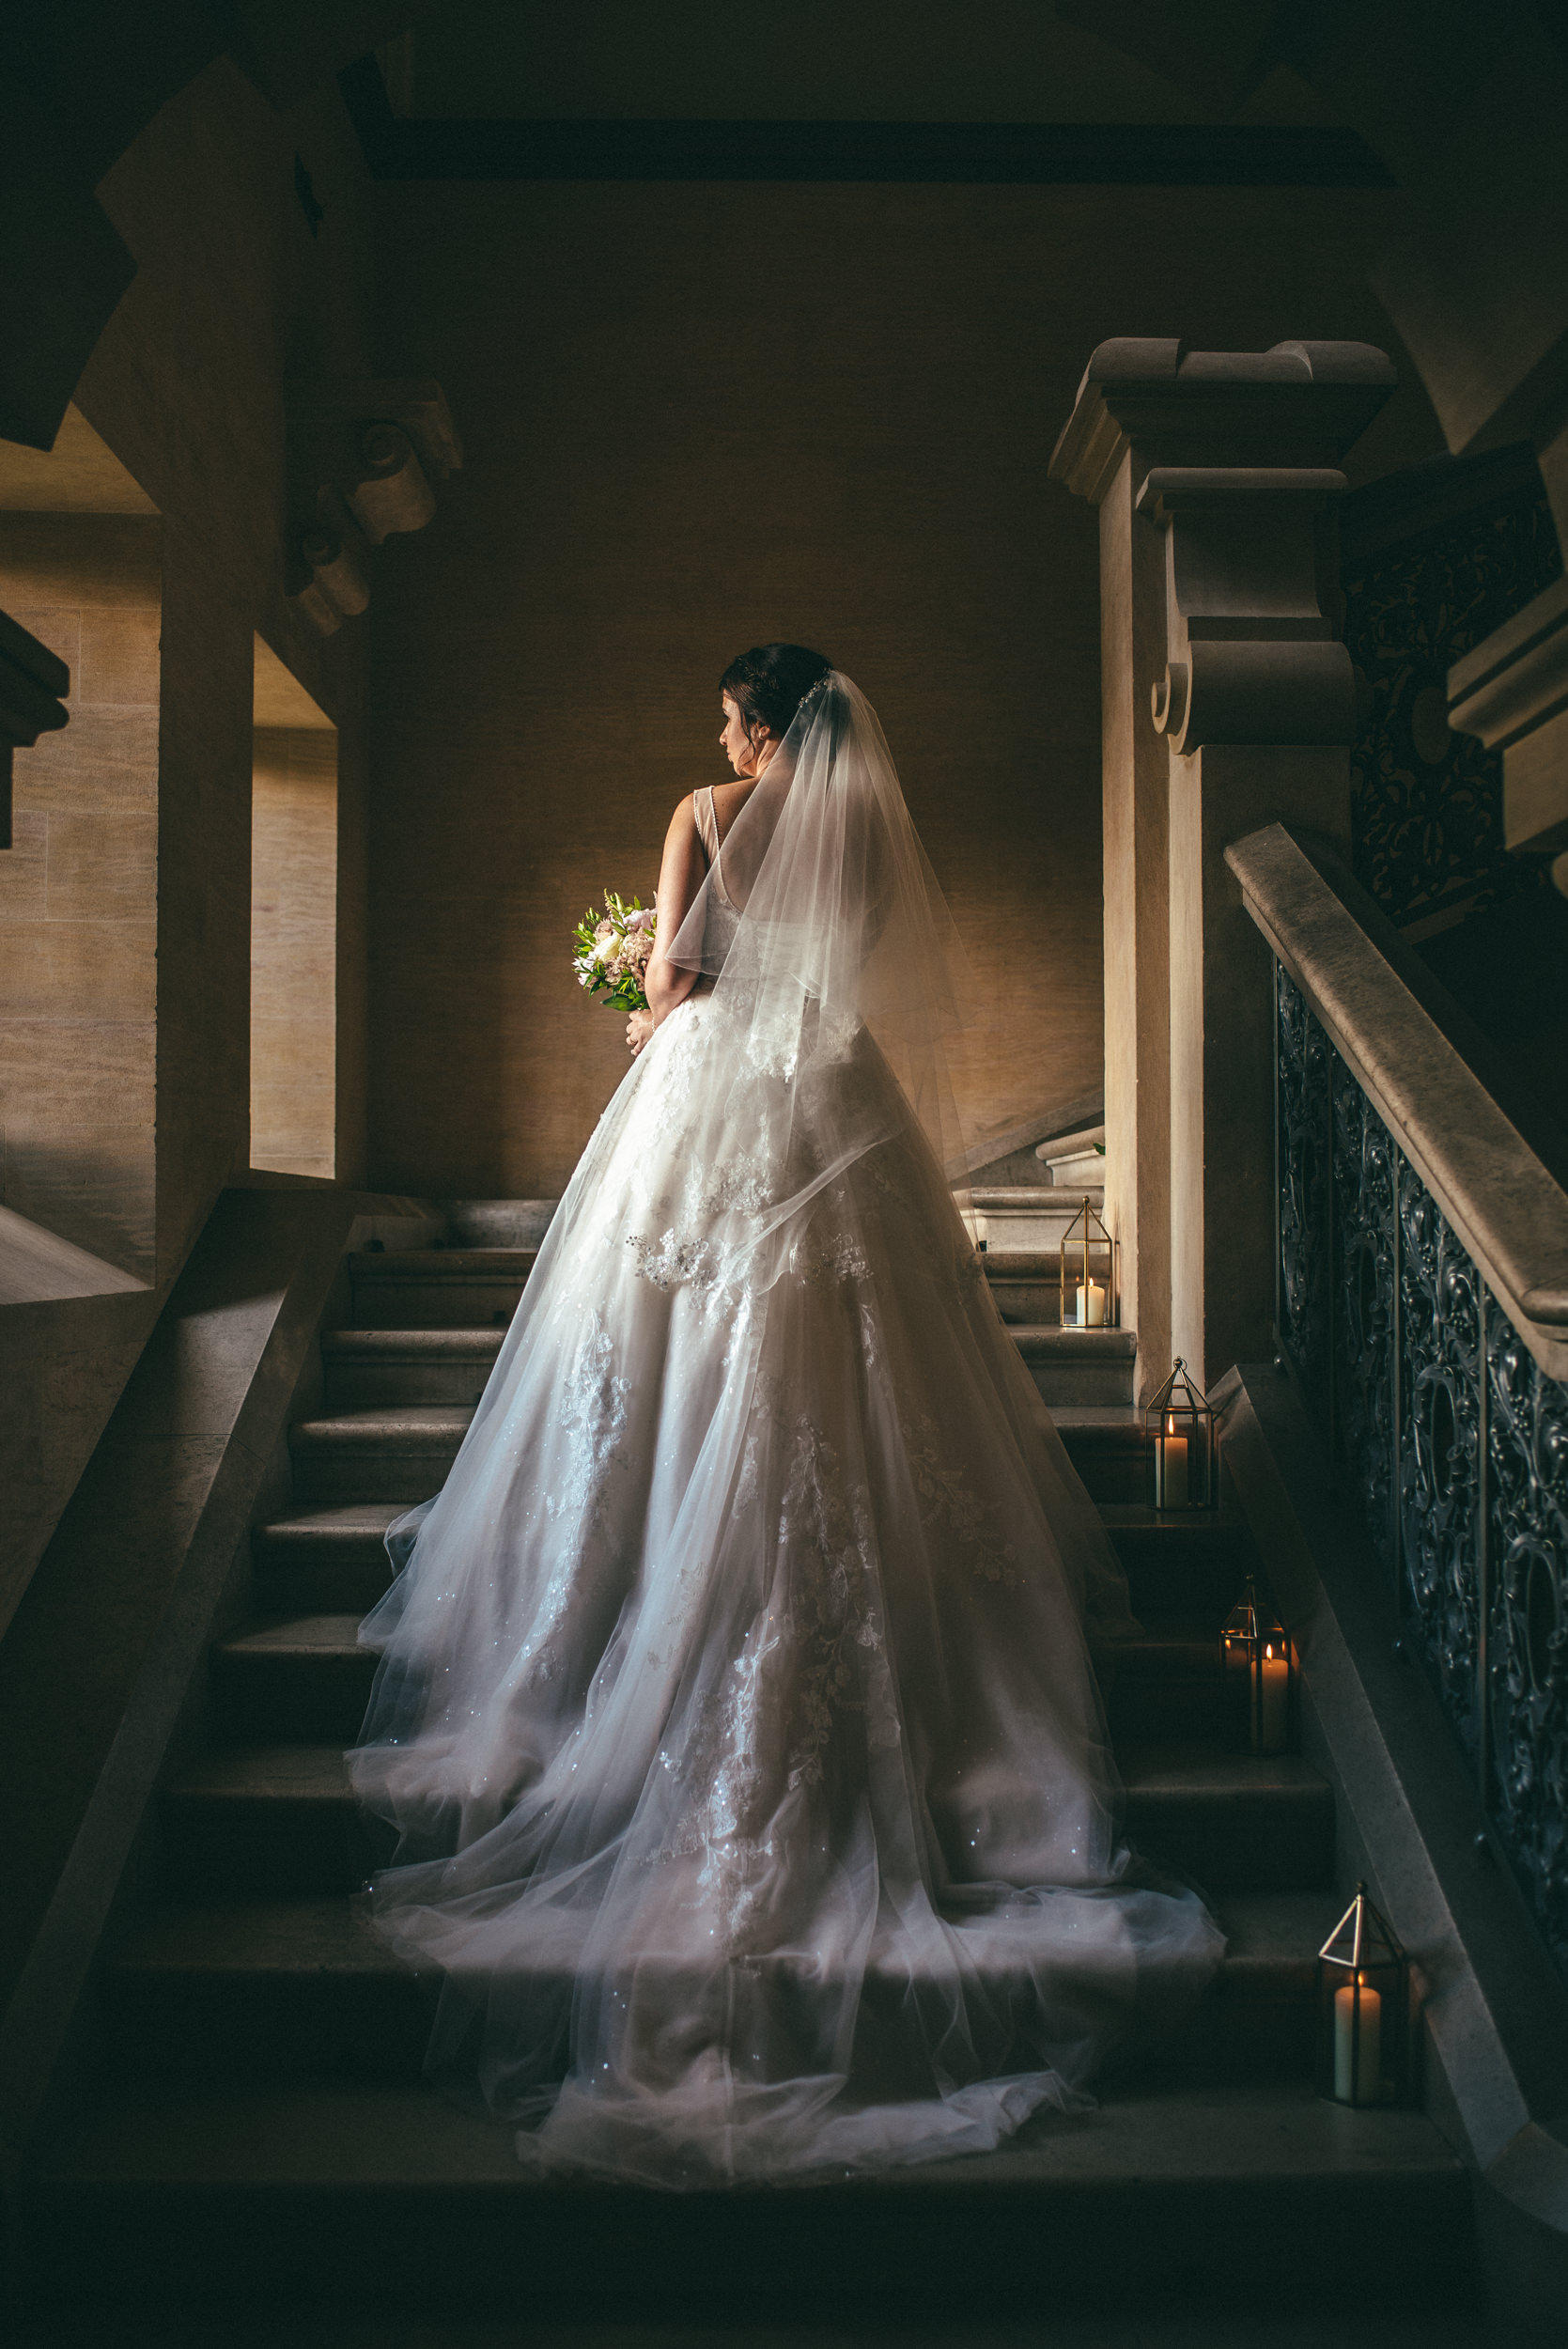 Portrait of the bride on the stairs in natural light at Harlaxton Manor